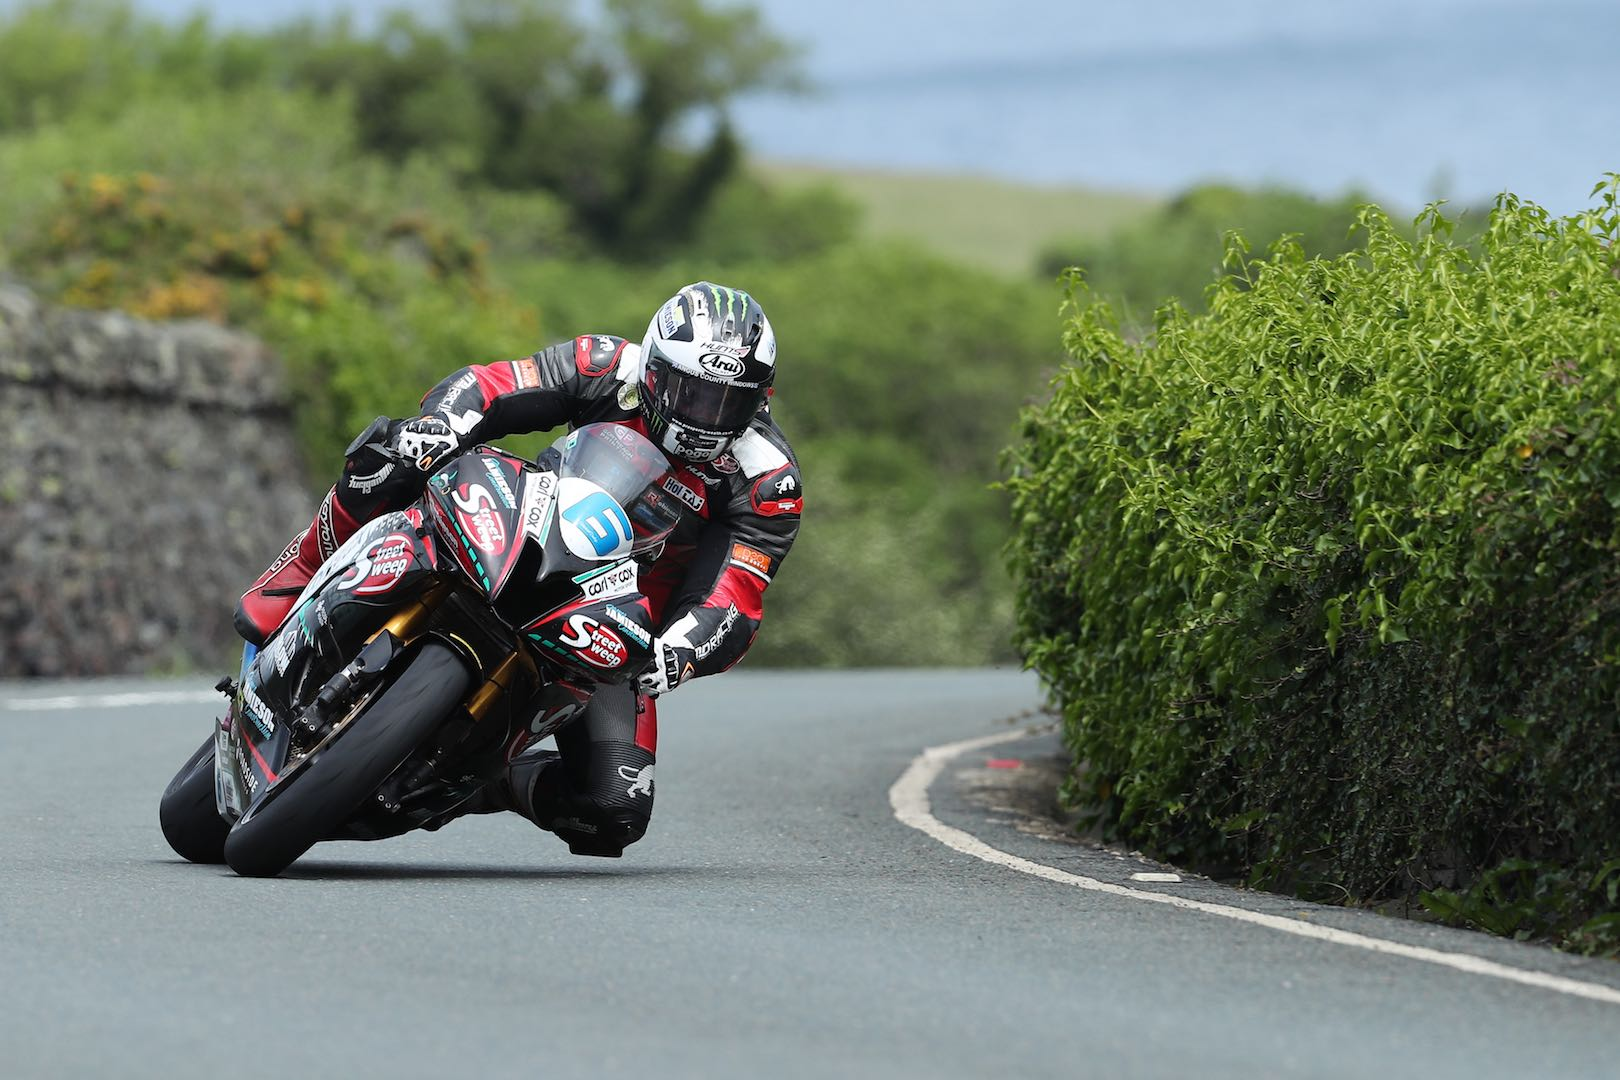 Louth motorcycle racer Peter Hickman earns first Isle of Man TT podium